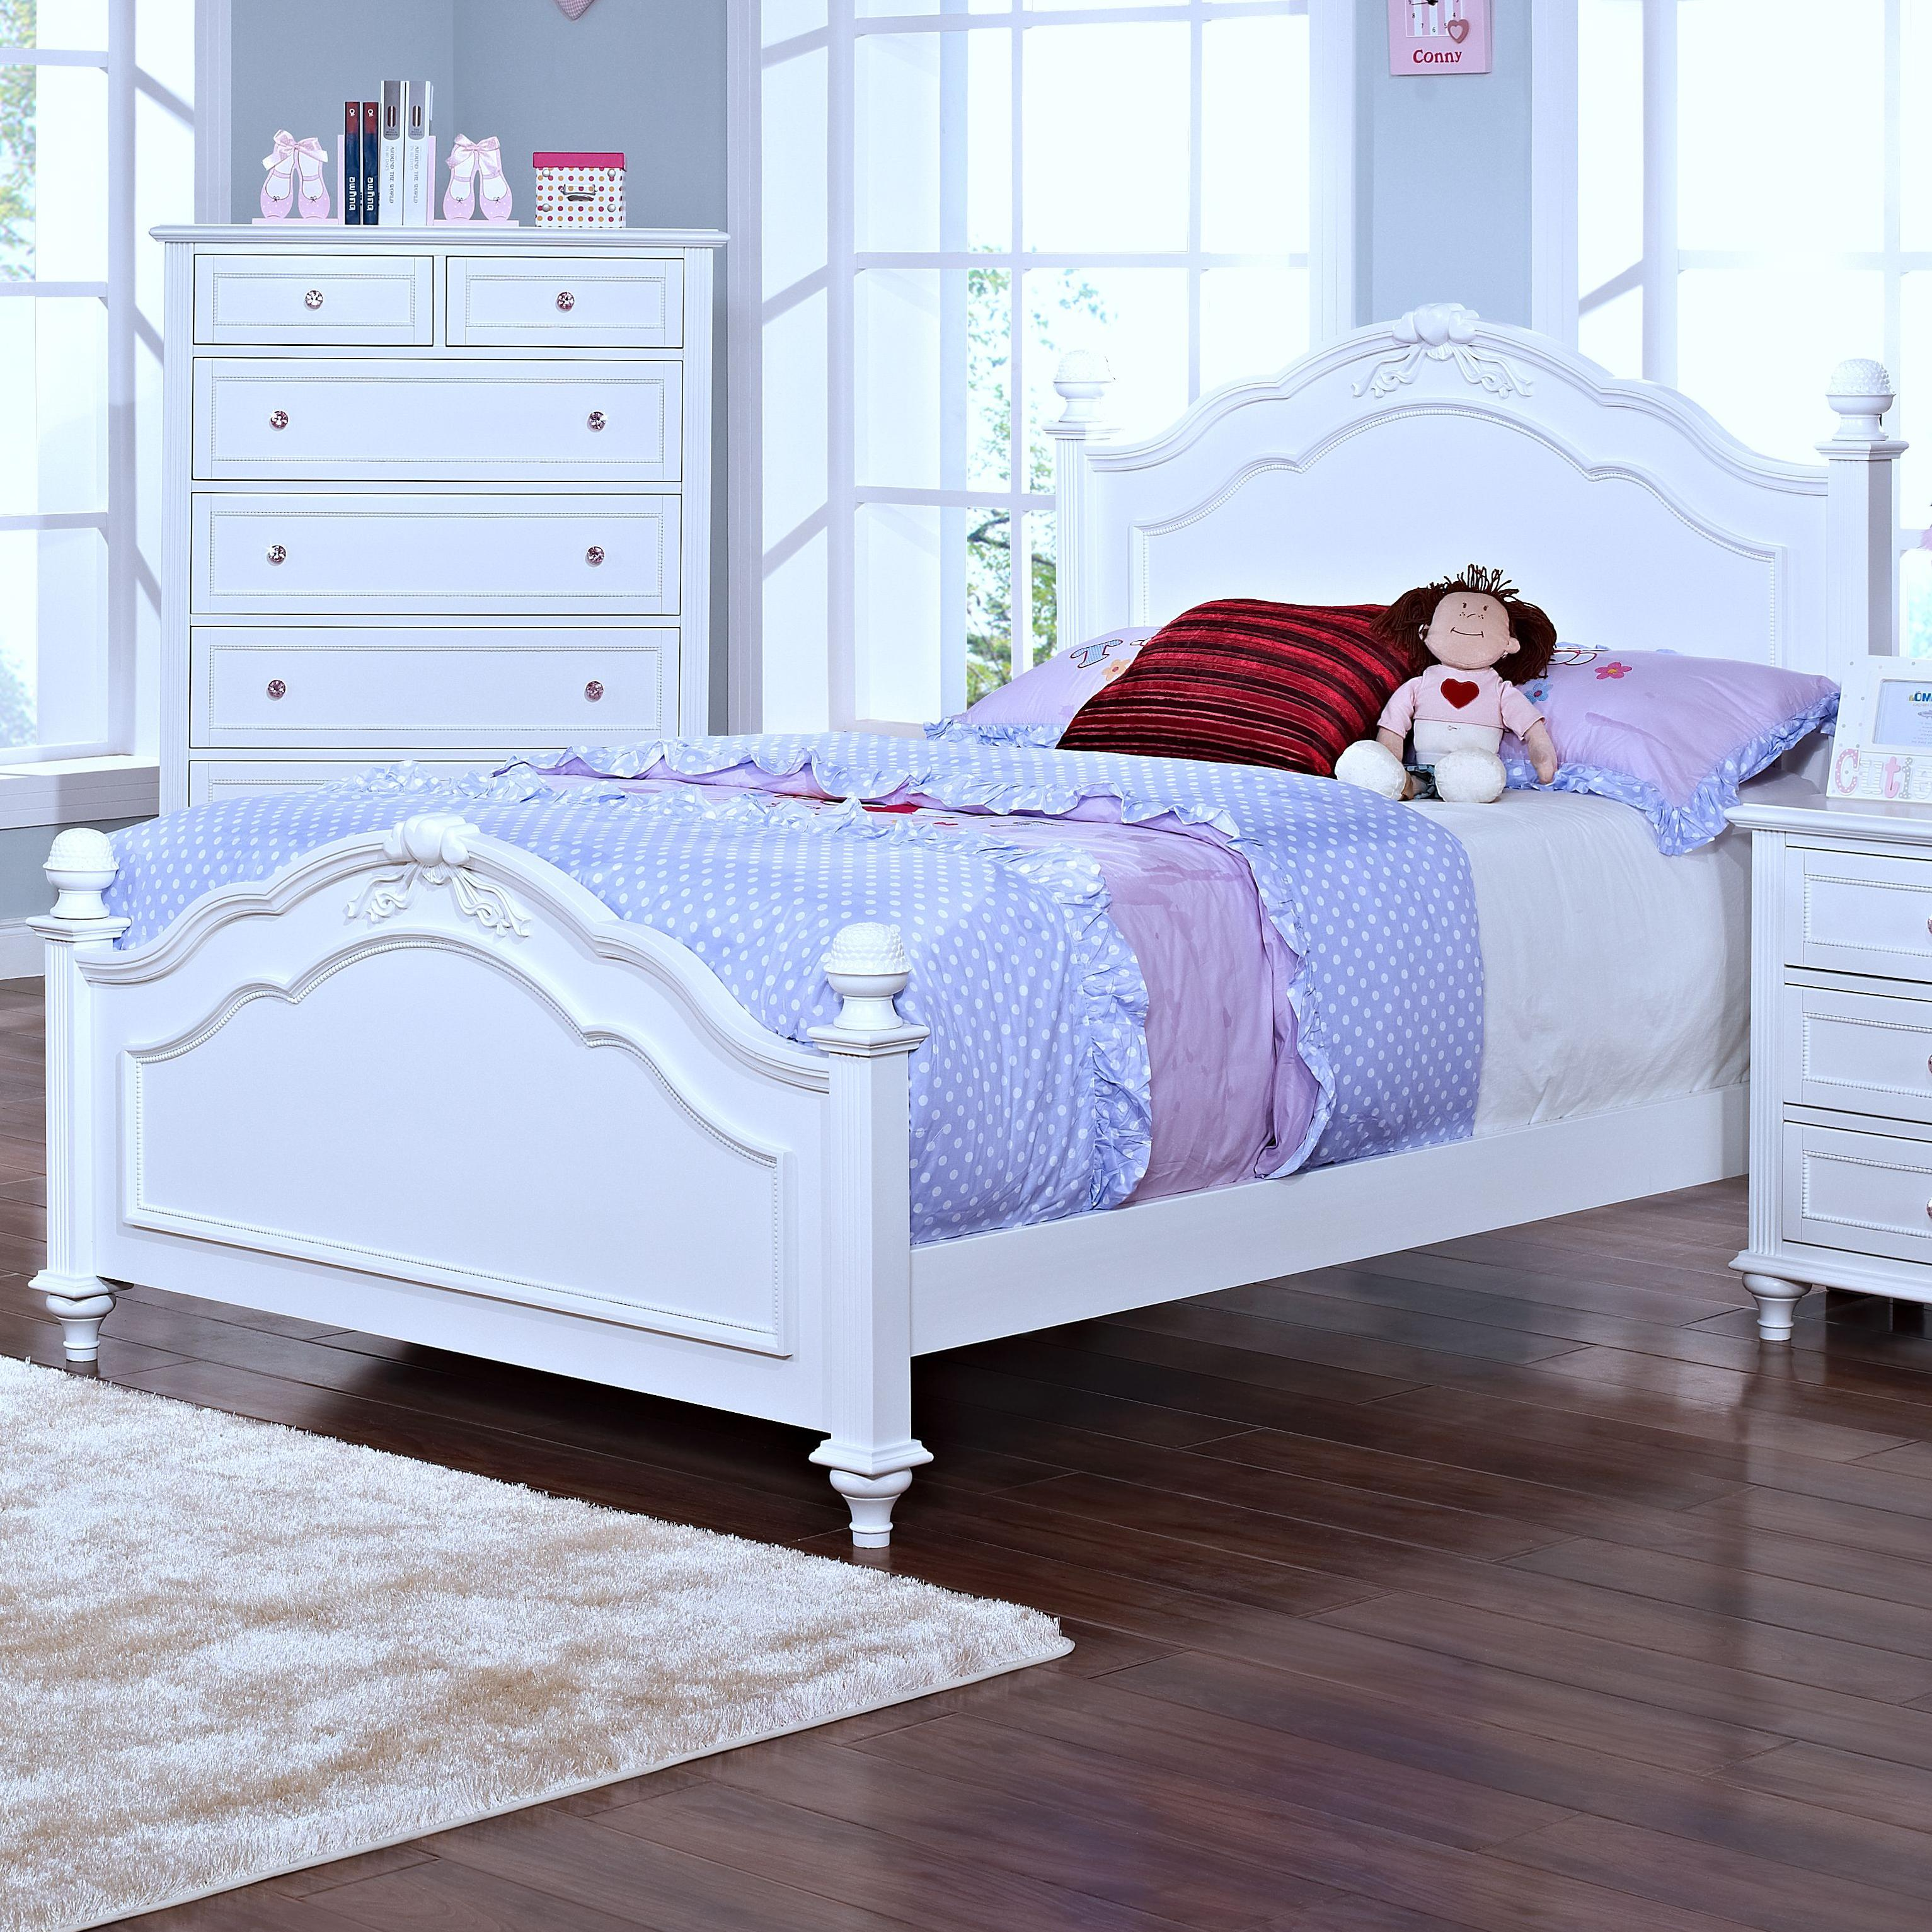 New Classic Megan Full Bed - Item Number: 05-242-410+420+430